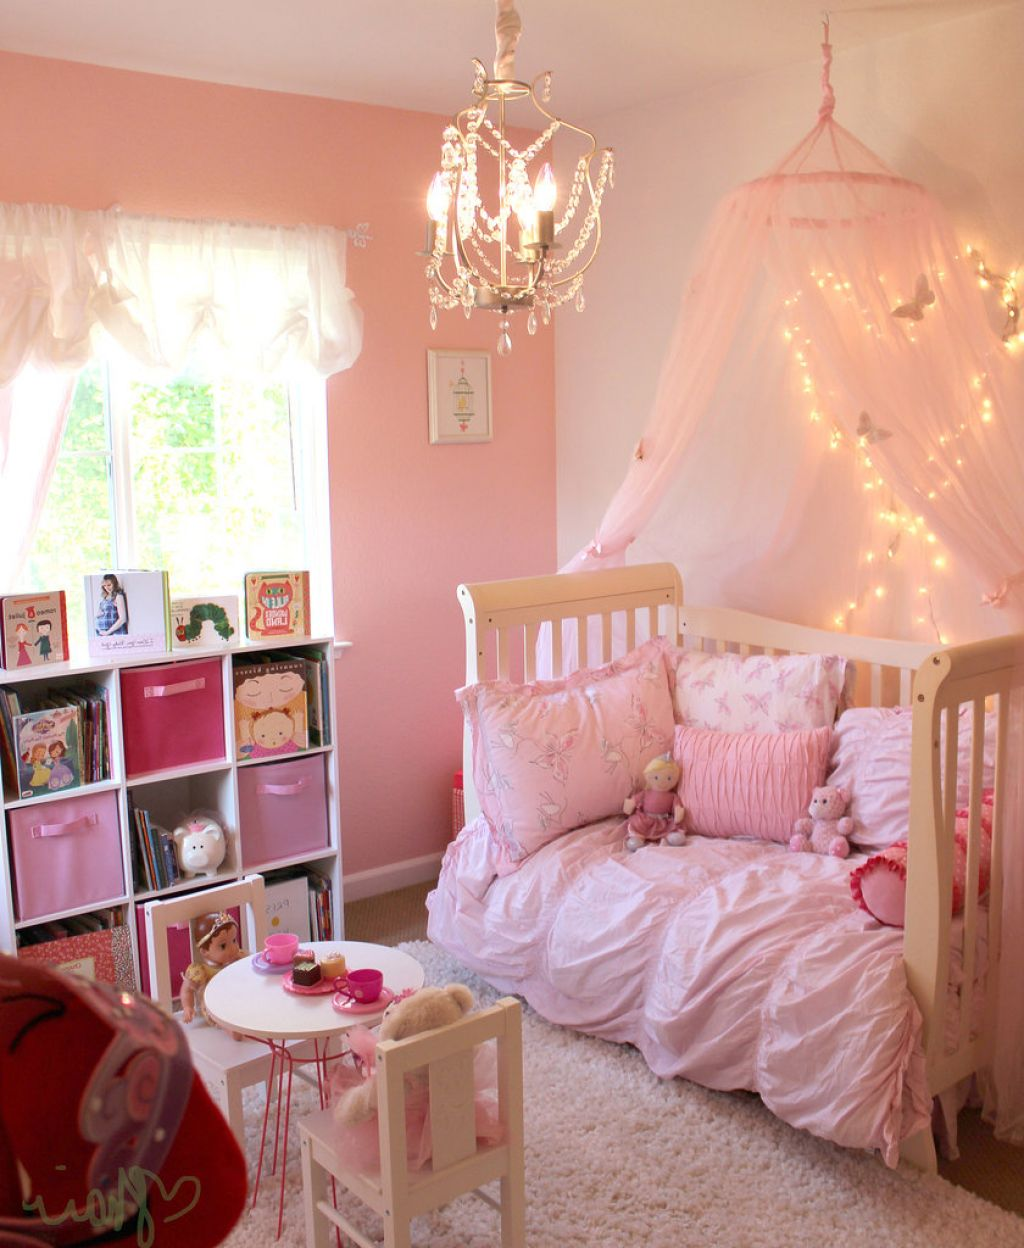 A Little Princess Nursery Design: 32 Dreamy Bedroom Designs For Your Little Princess